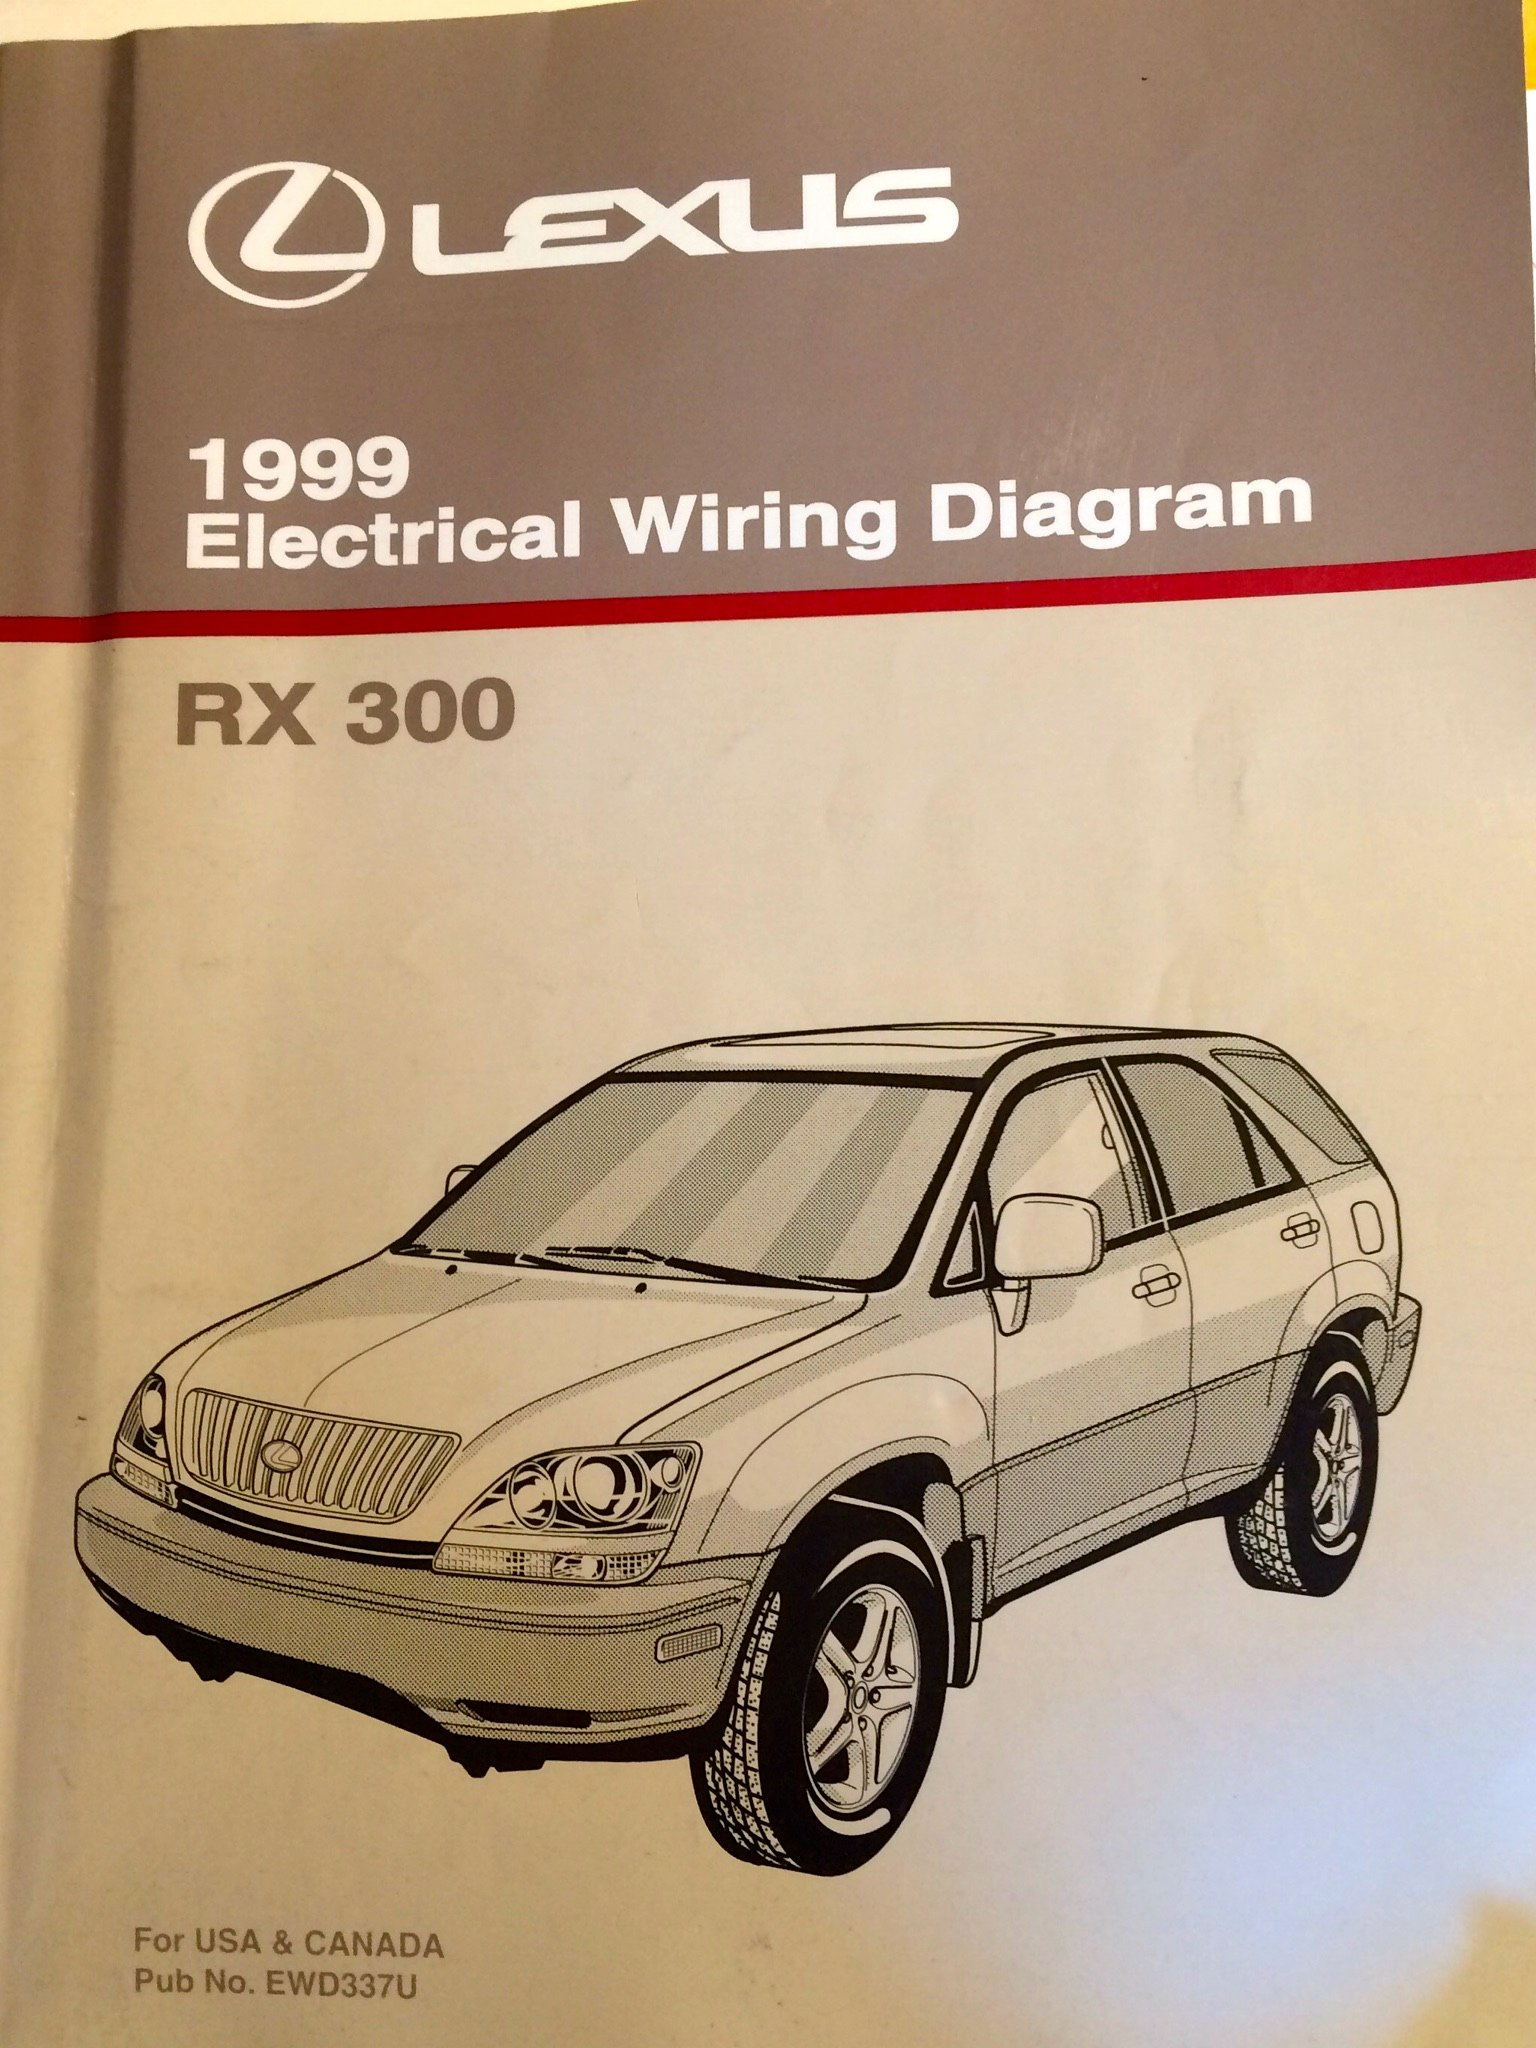 1999 Lexus RX 300 Electrical Wiring Diagram (MCU10, 15 Series): Toyota  Motor Corporation: Amazon.com: Books